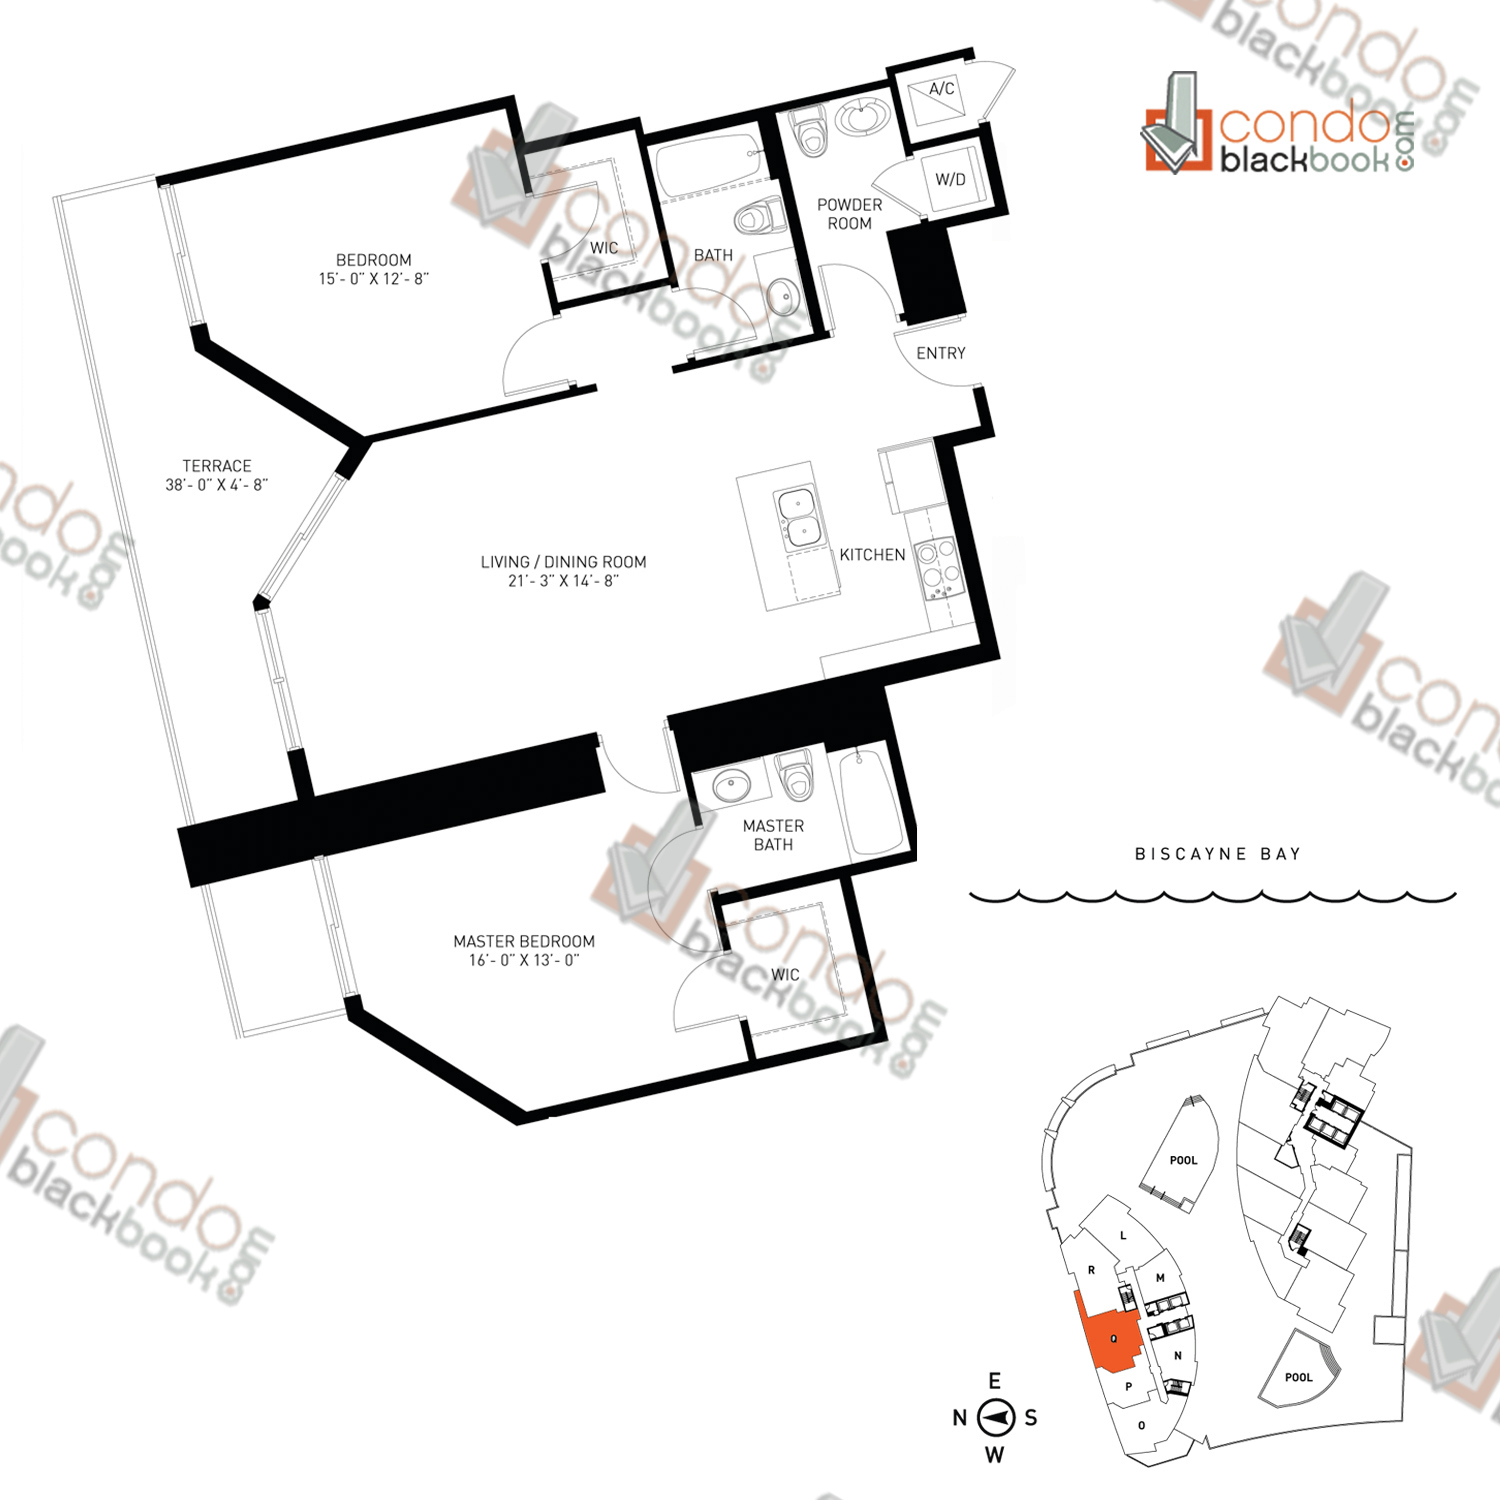 Floor plan for Quantum on the Bay Edgewater Miami, model Residence_Q, line North Tower - 14, 2/2.5 bedrooms, 1,243 sq ft